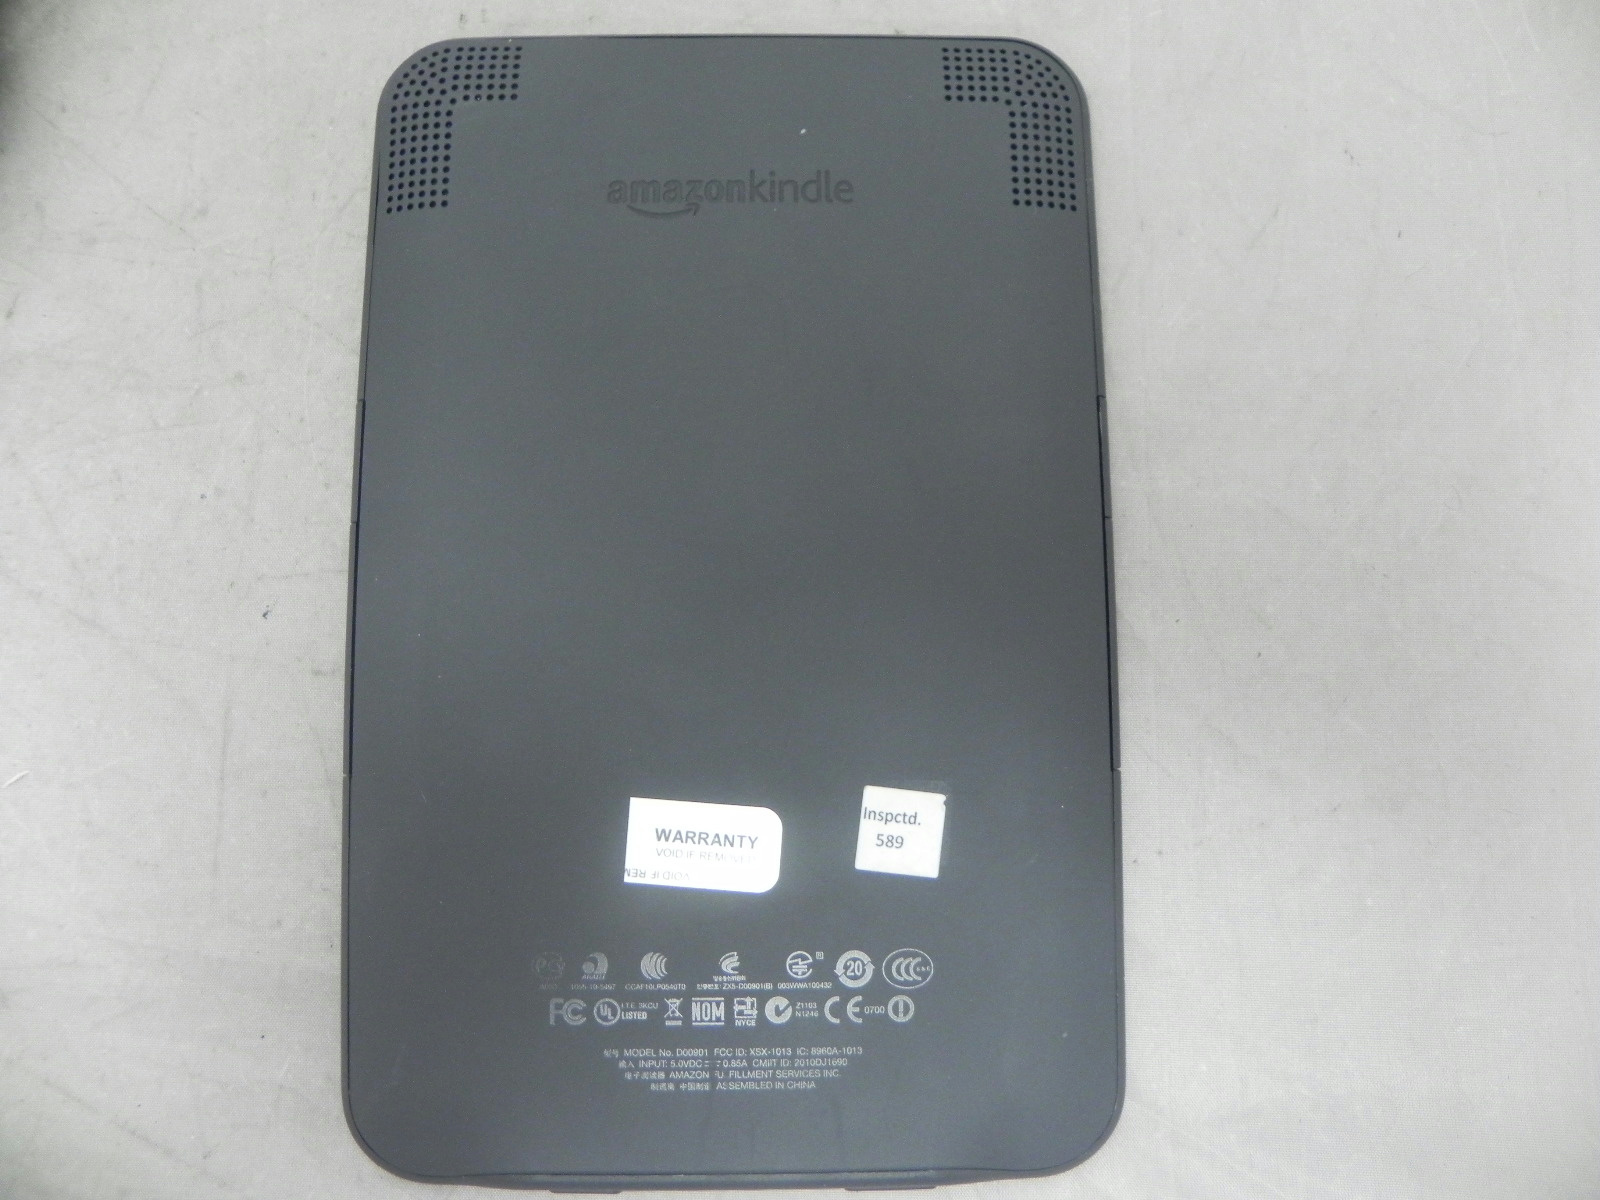 Amazon Kindle Ebook Ereader Tablet Model D00901 6